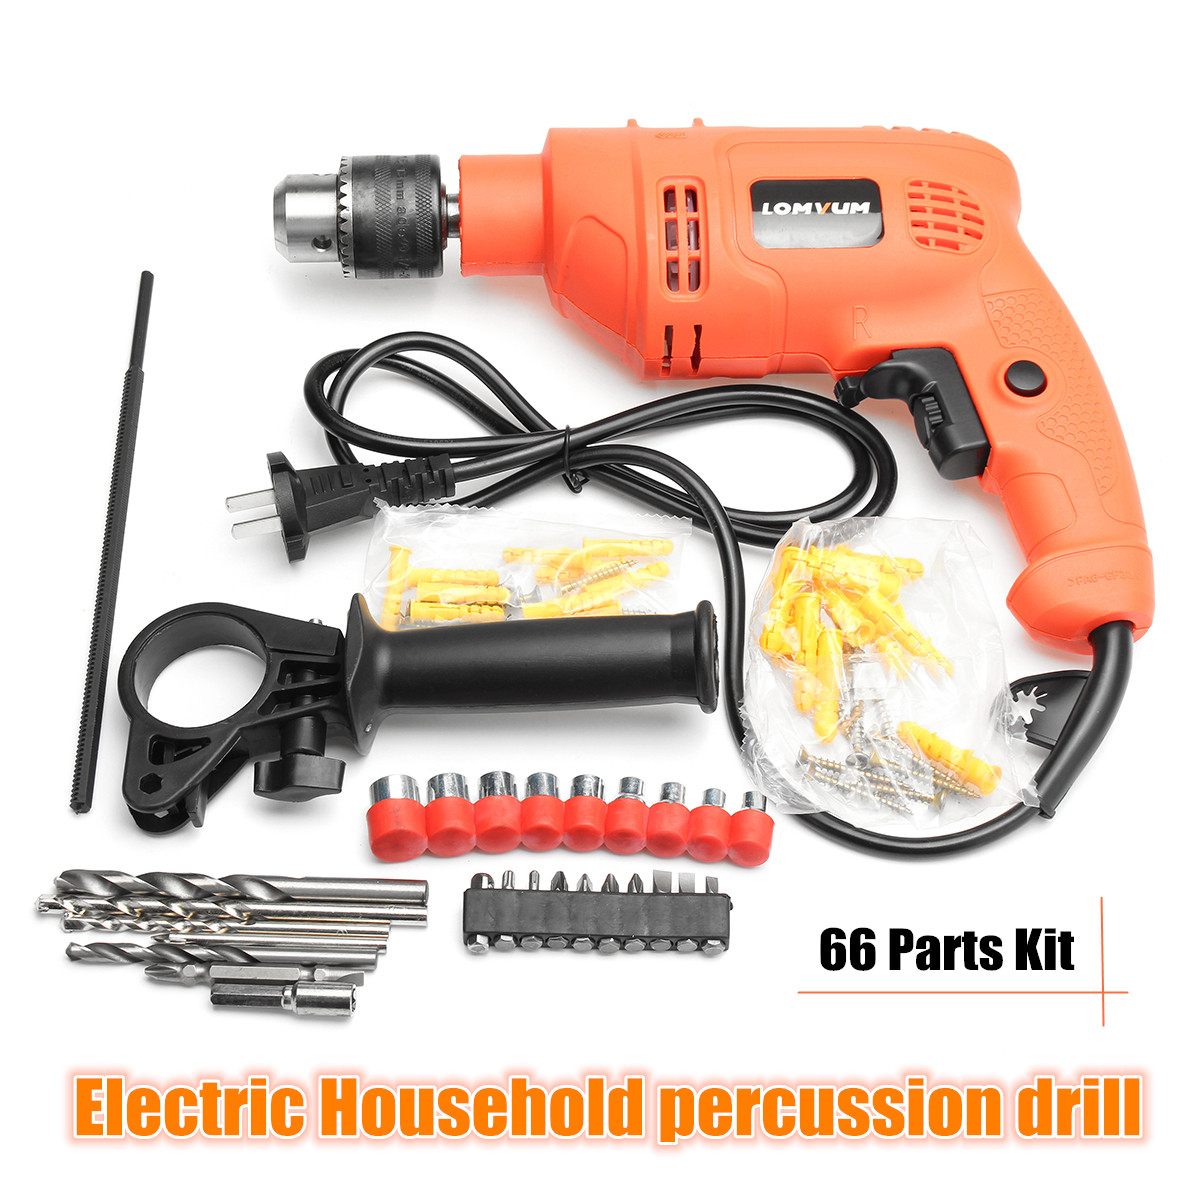 220V 600W Household Percussion Electric Drill Power Drills Impact Drill with 66 Pcs Sleeve multi purpose impact drill for household use la414413 upholstery drilling wall percussion impact drill set power tools 220v 810w